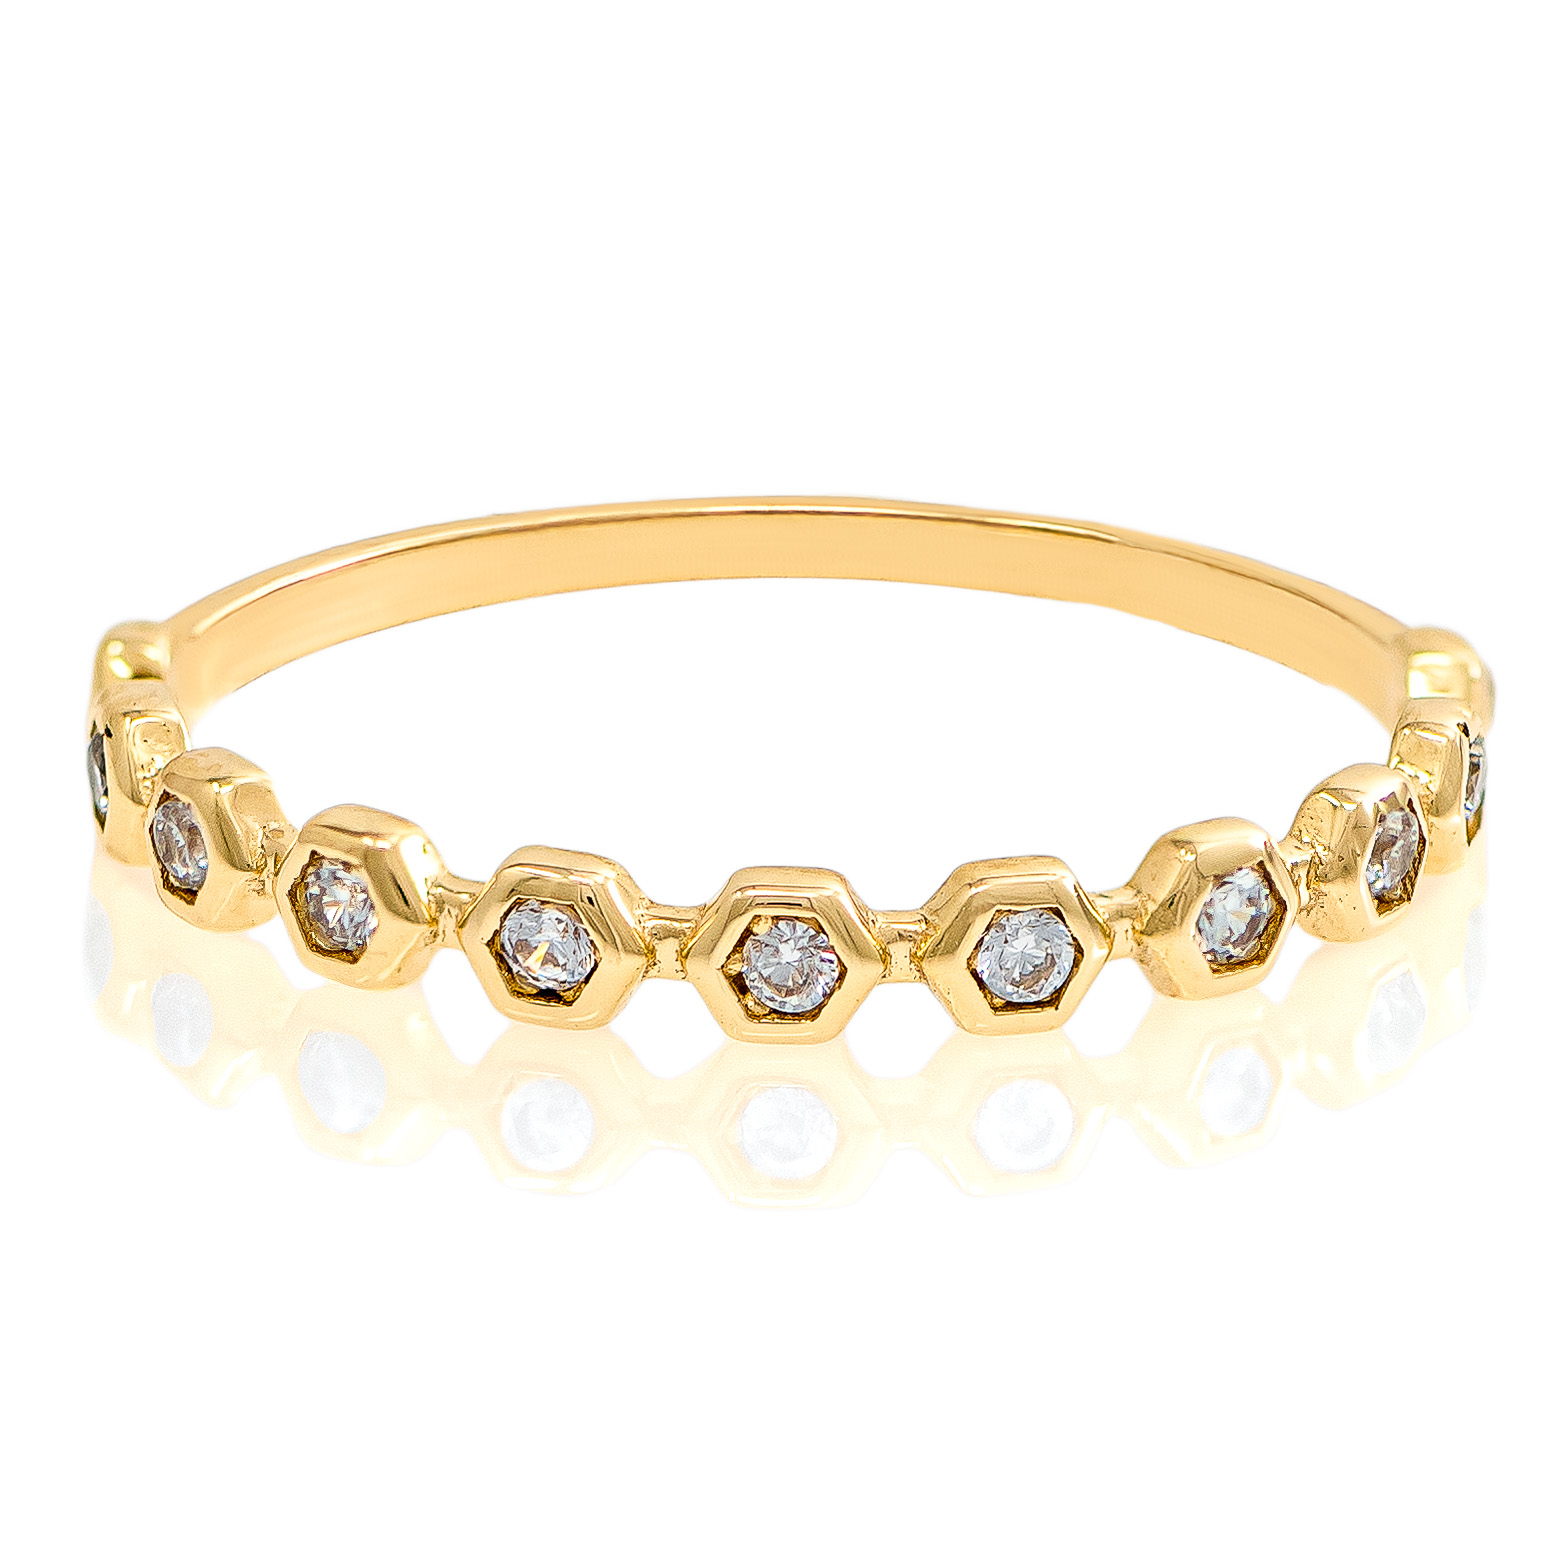 Yellow Gold 9kt Ring with Cubic Zirconia